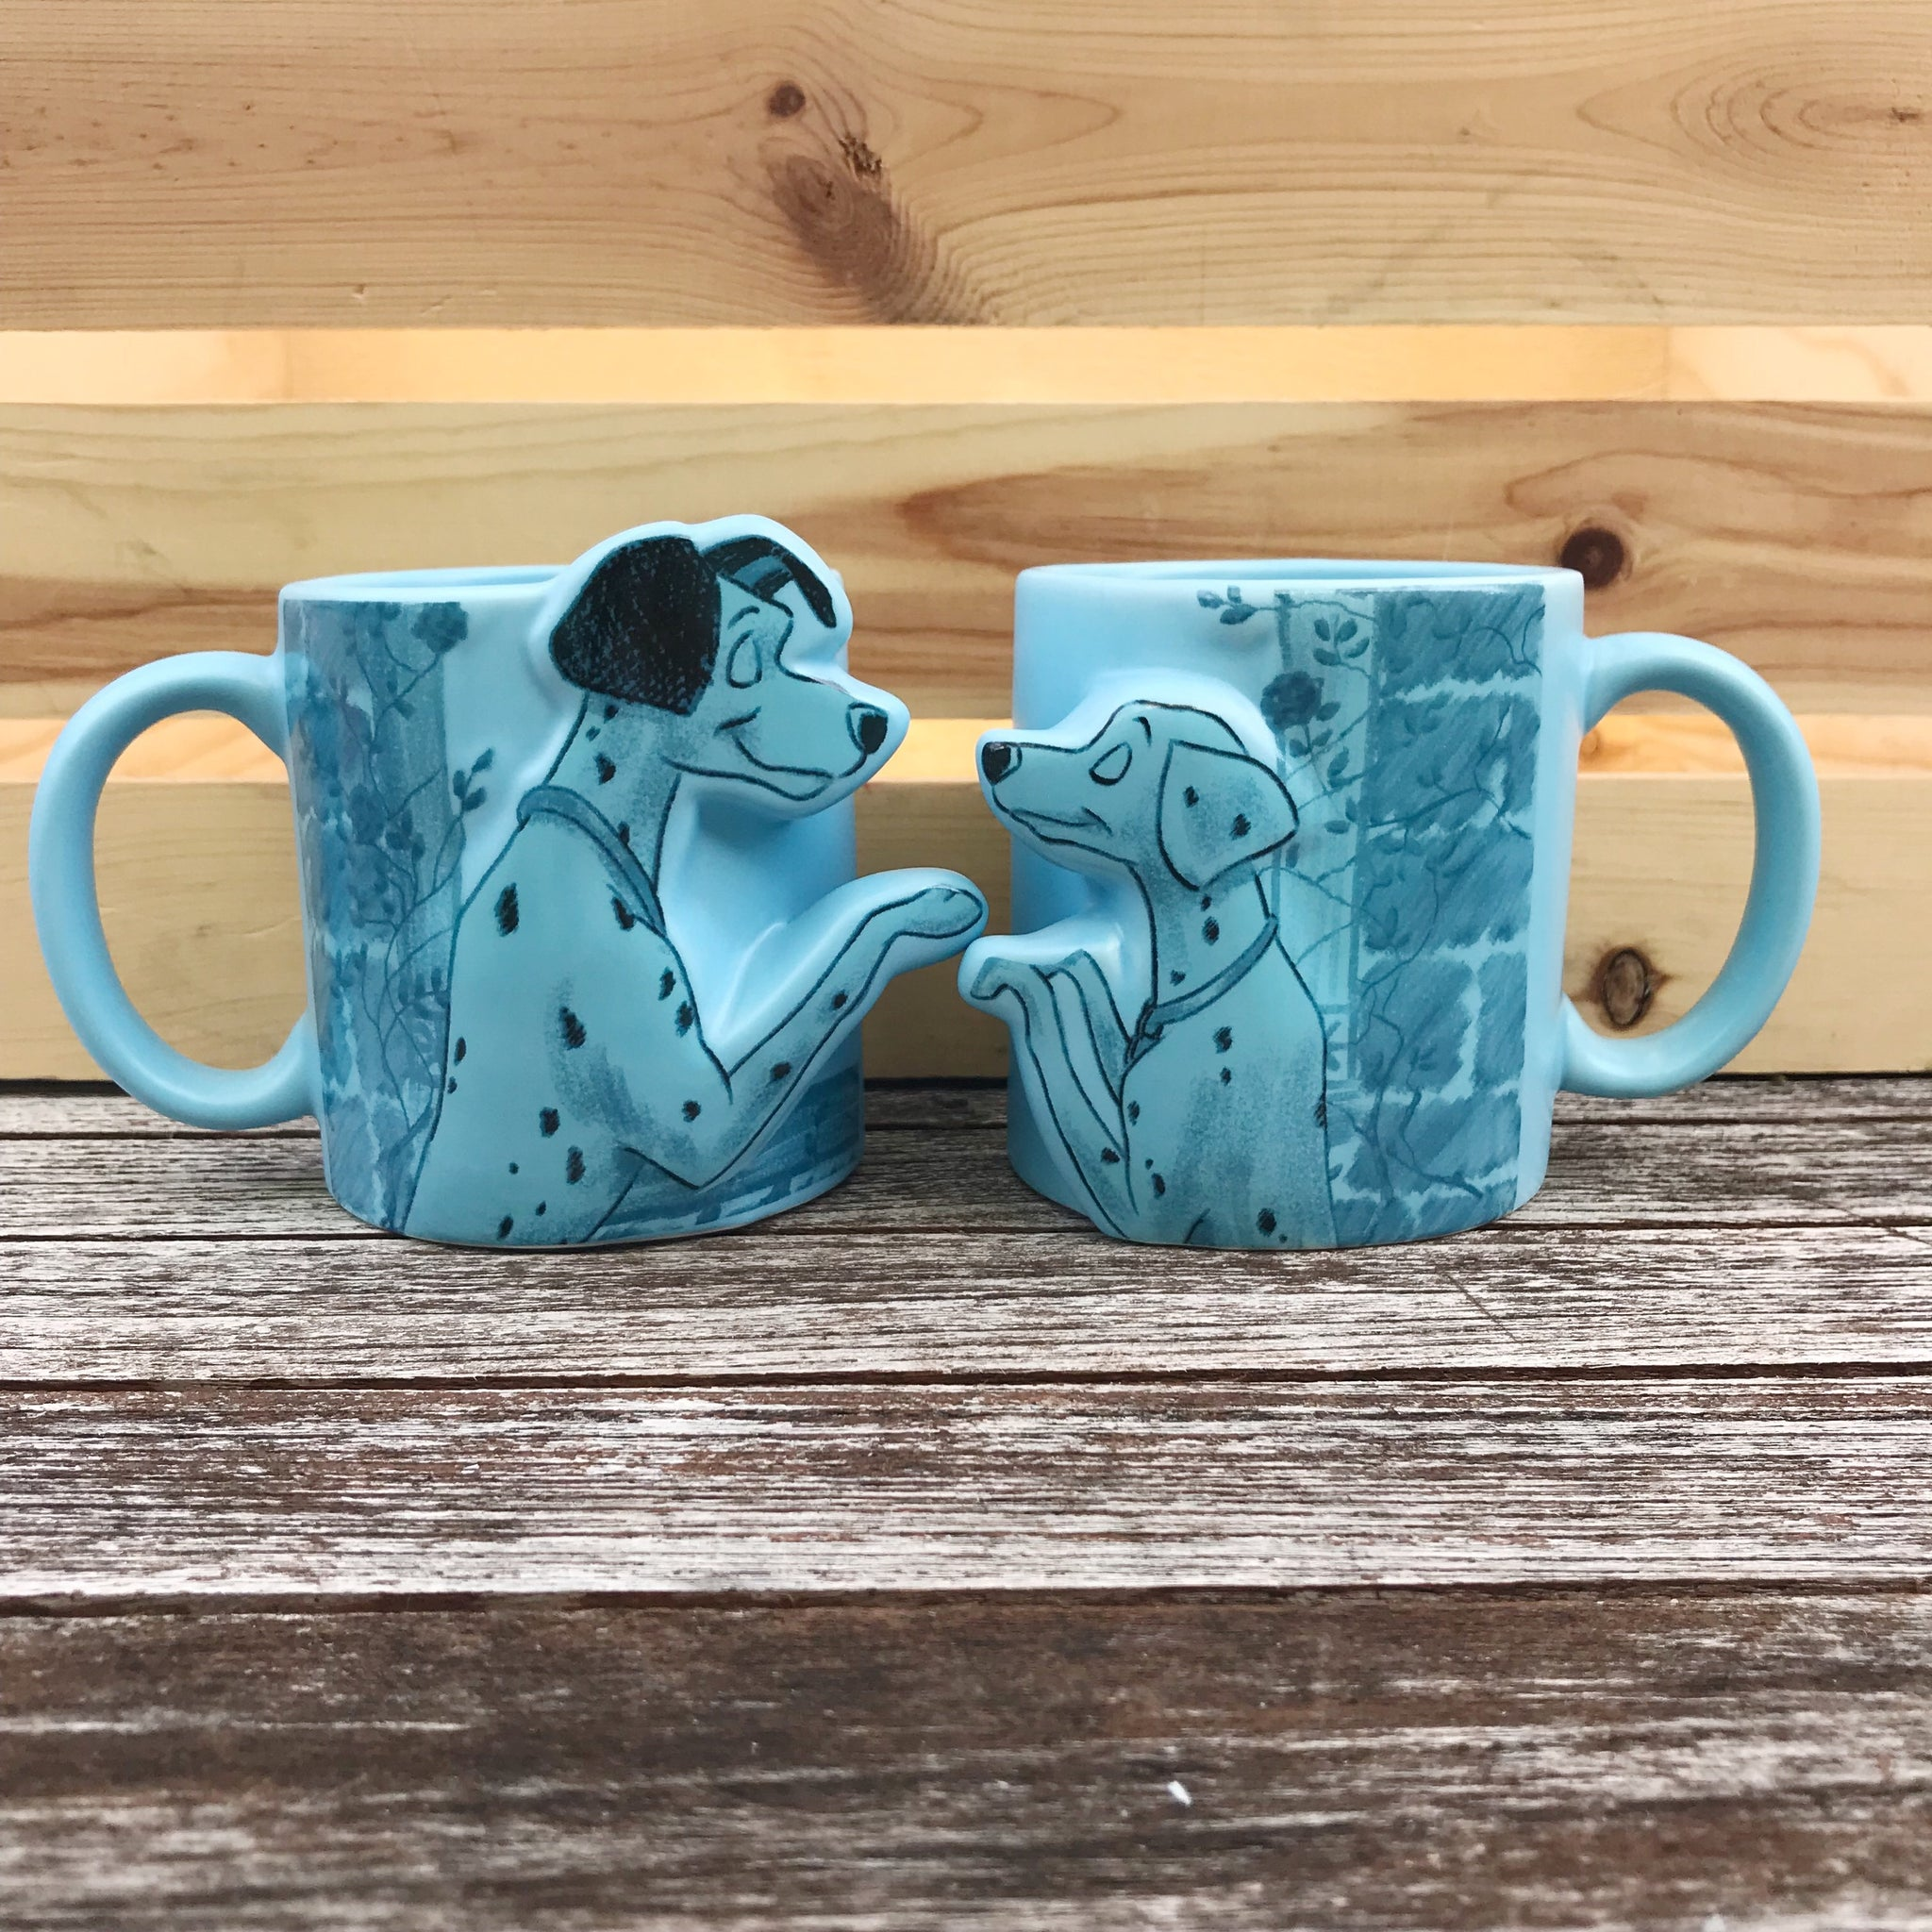 [Front View] Pair of pastel blue mugs with curved handle, 1 Mug has male Dalmation, and the other, a female Dalmation facing eachother.  Both drawn in a black outline with watercolor background of flowers and a brick wall in darker shade of blue.